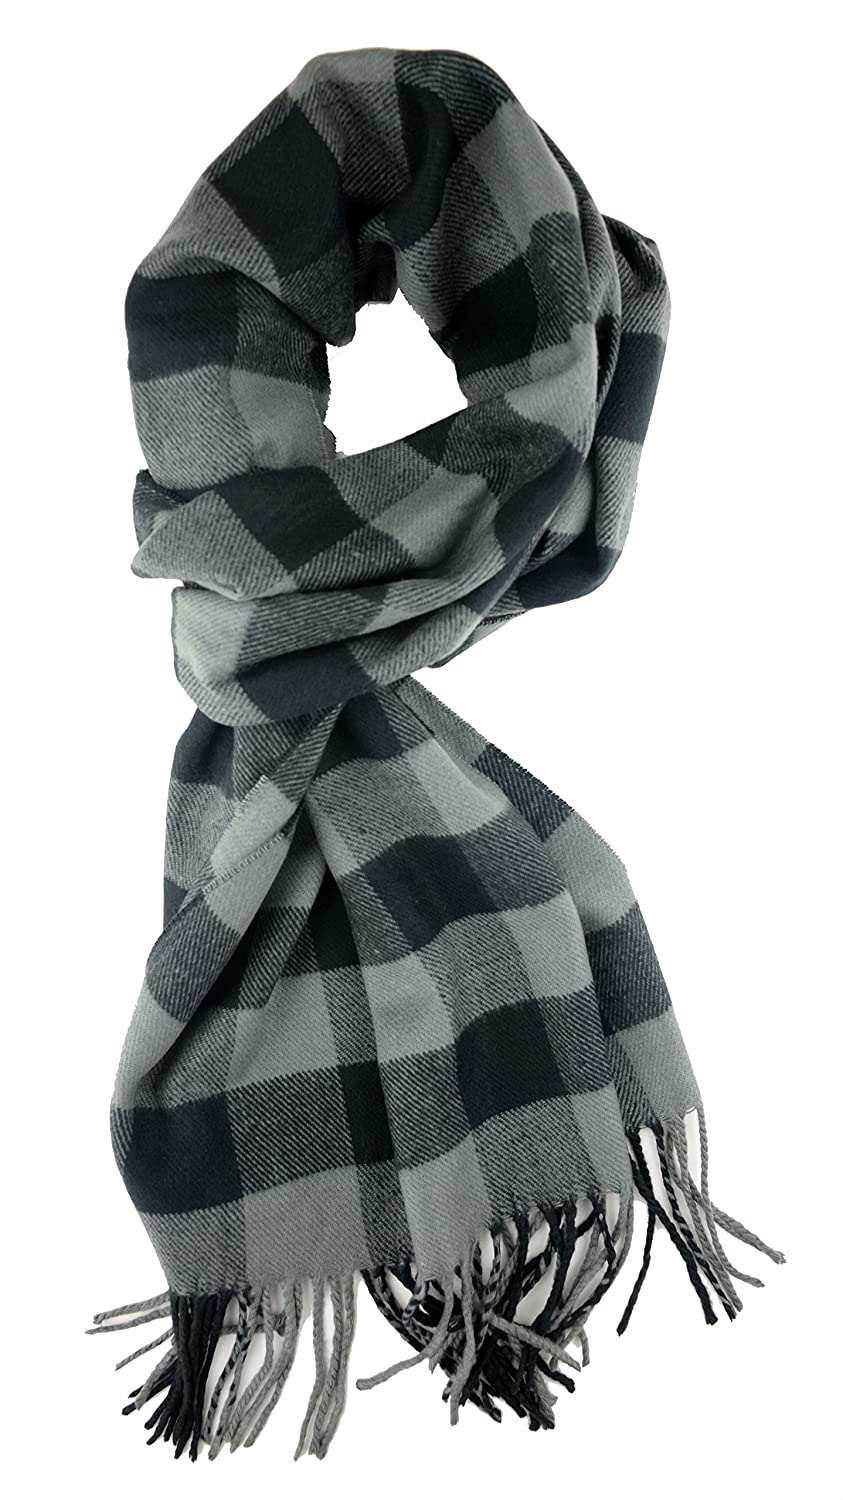 Plum Feathers Plaid Check and Solid Cashmere Feel Winter Scarf 46-09-bg